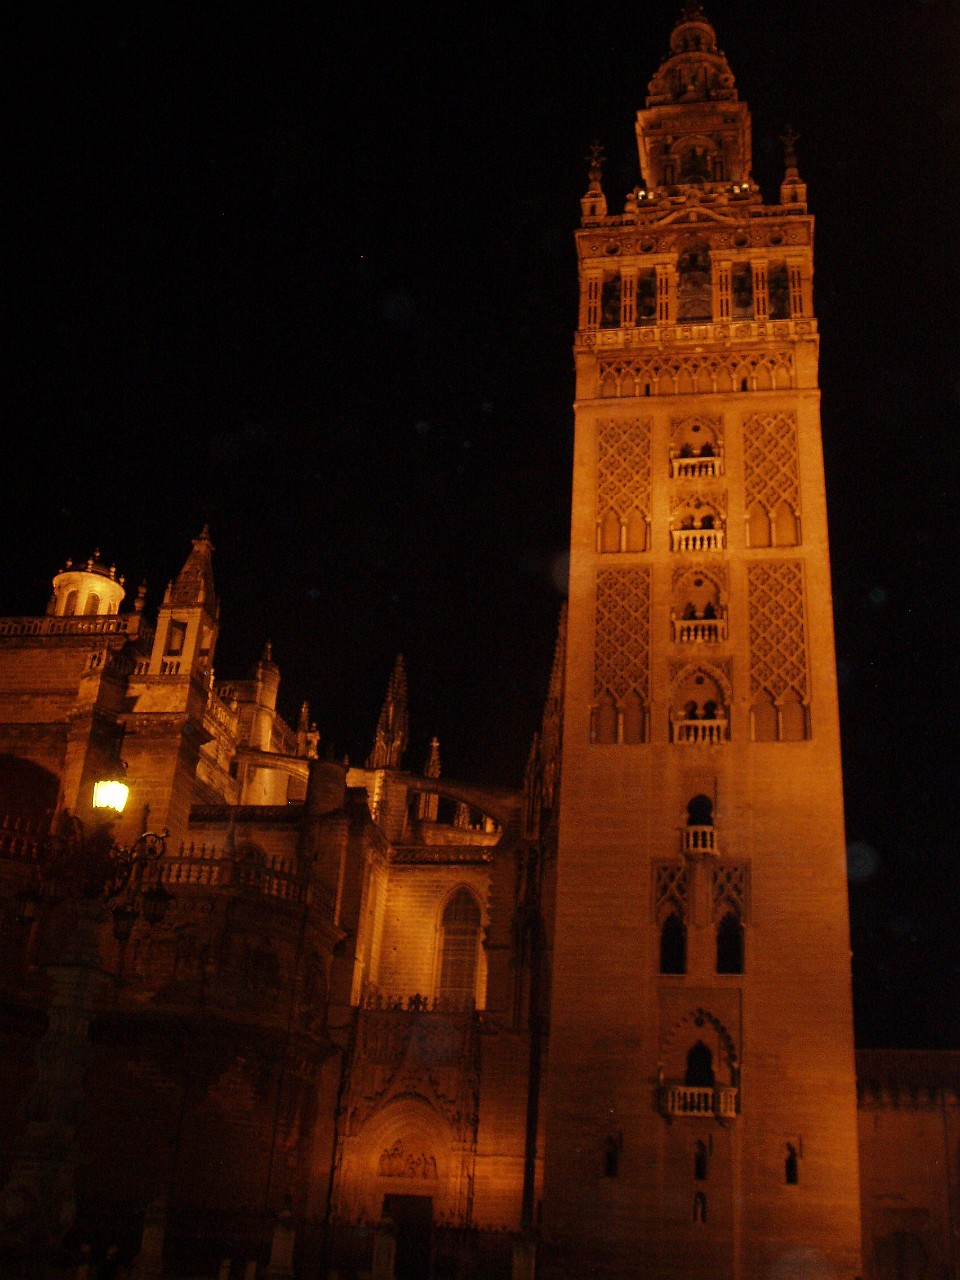 The Seville Cathedral Bell Tower (The Giralda) at night